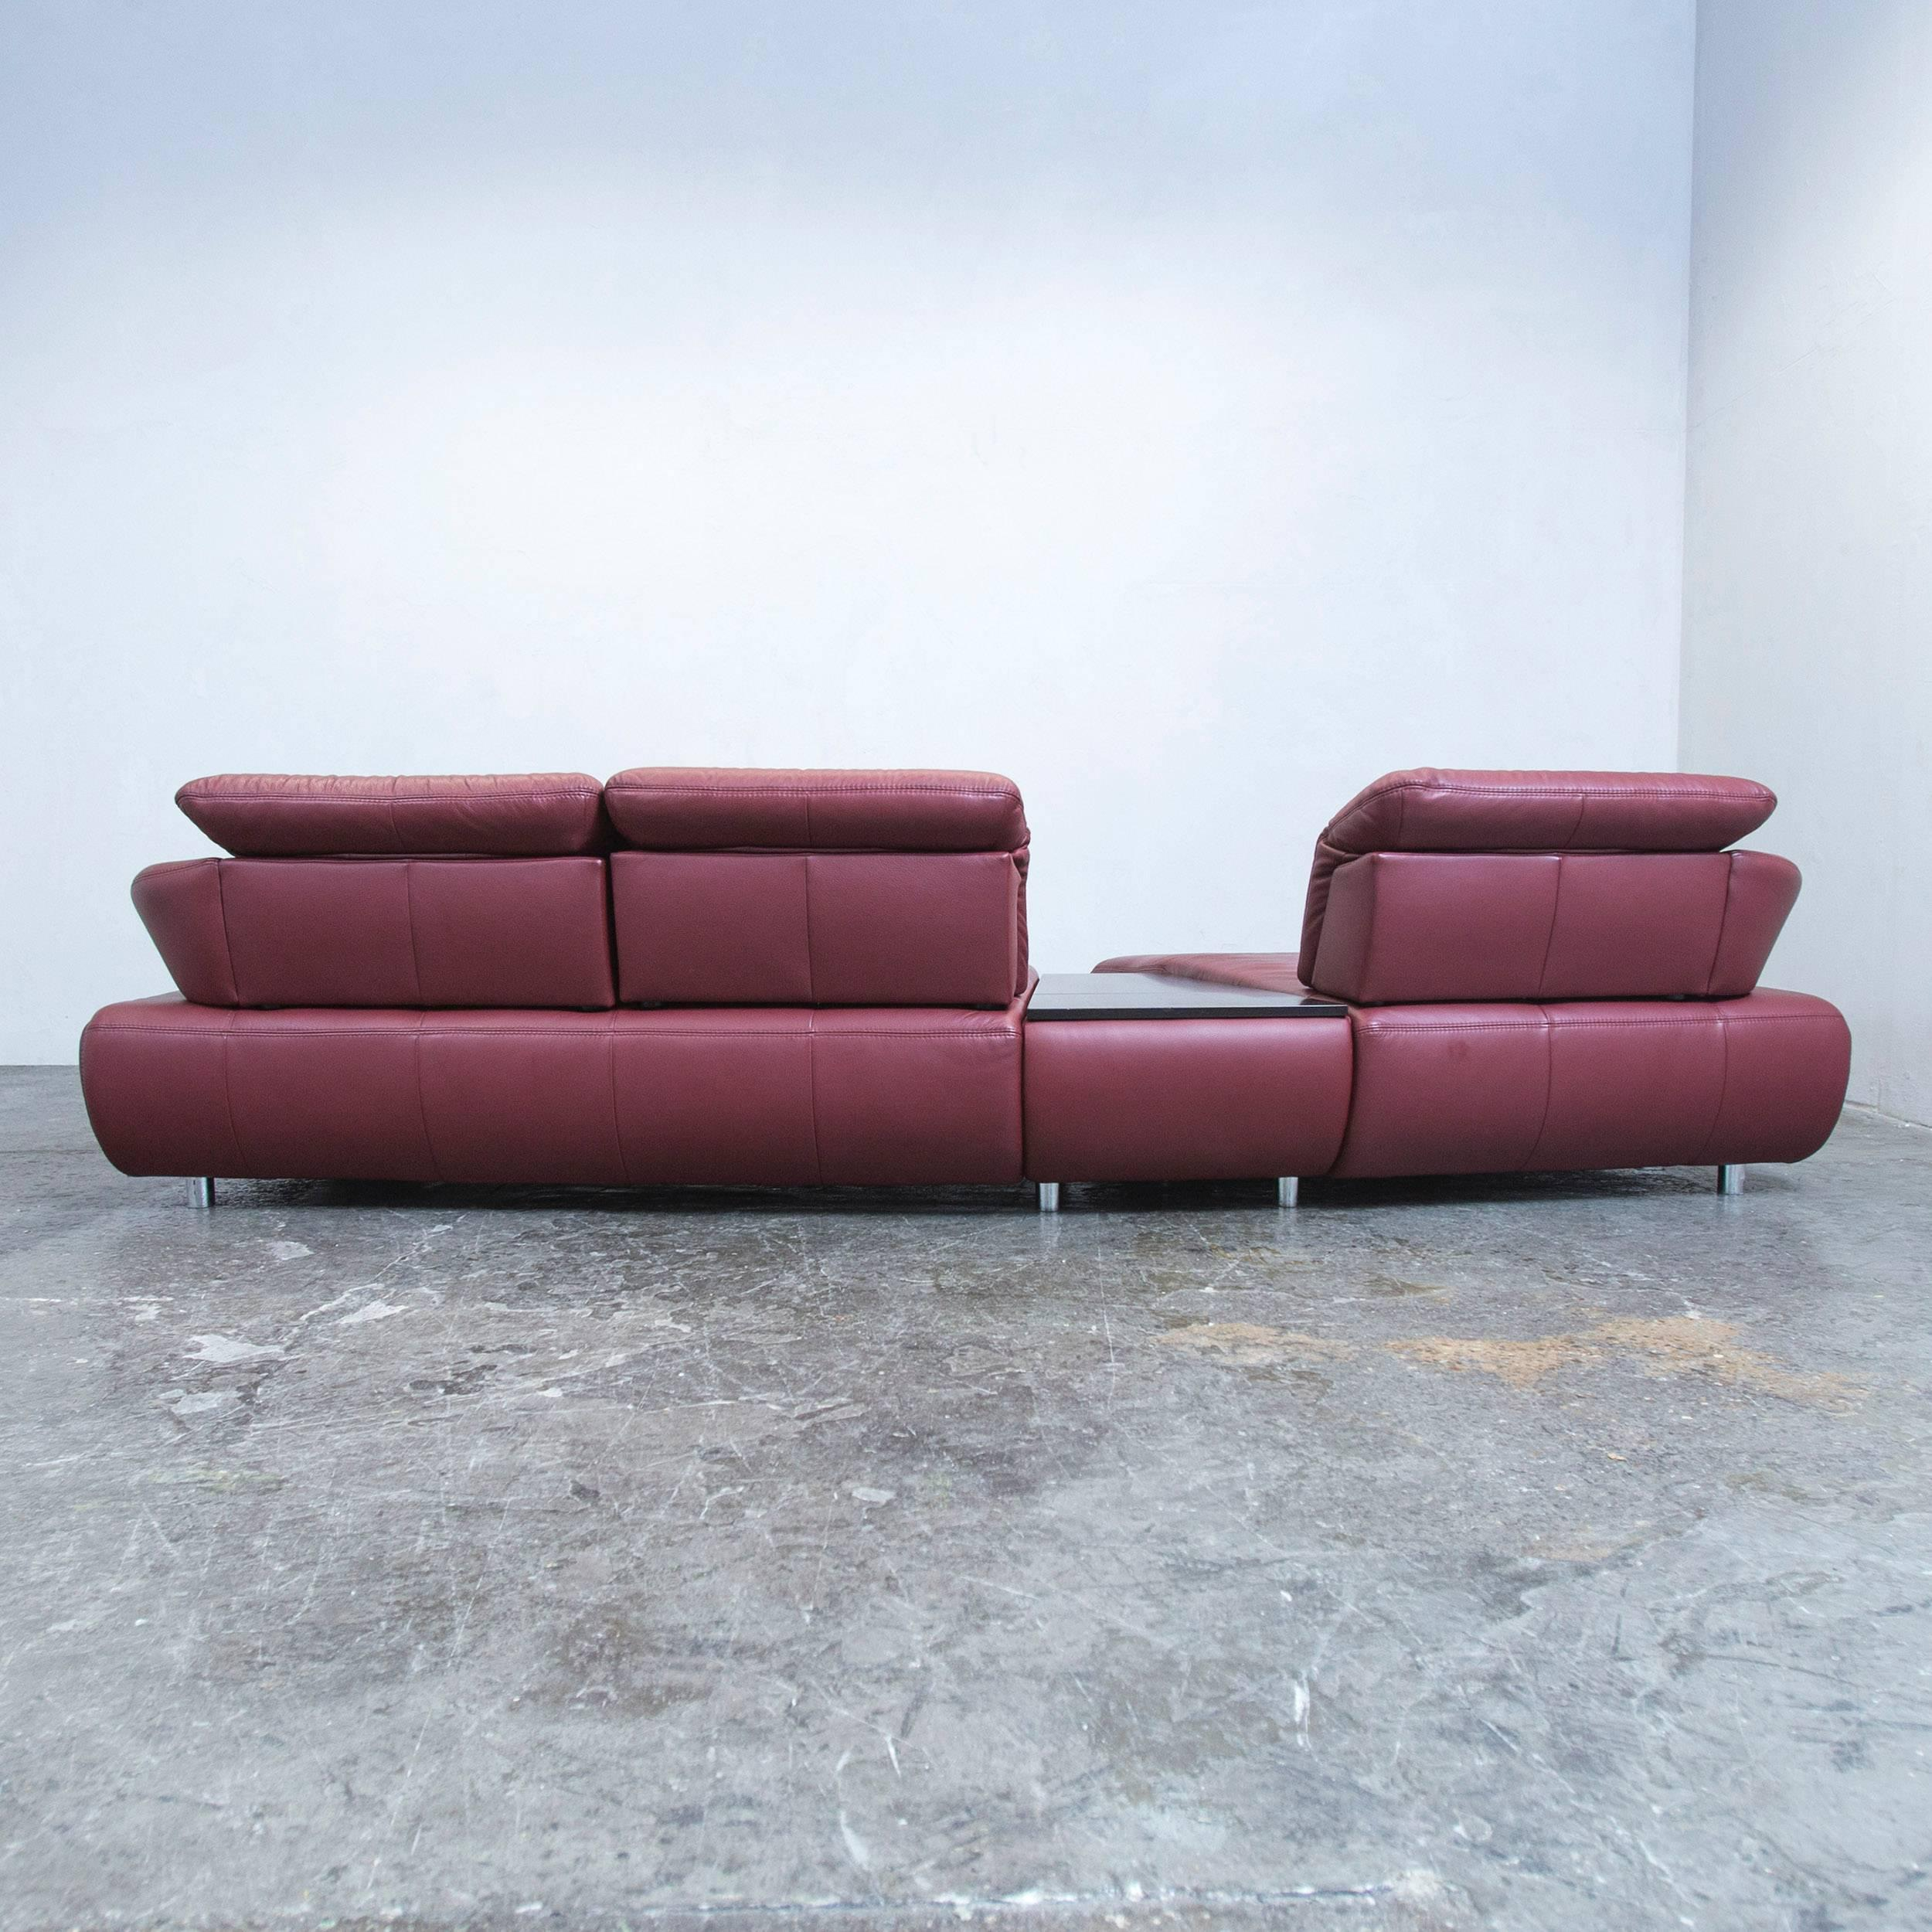 Recamiere Modern recamiere chaise lounge sofa for bedroom a guide on ottomane